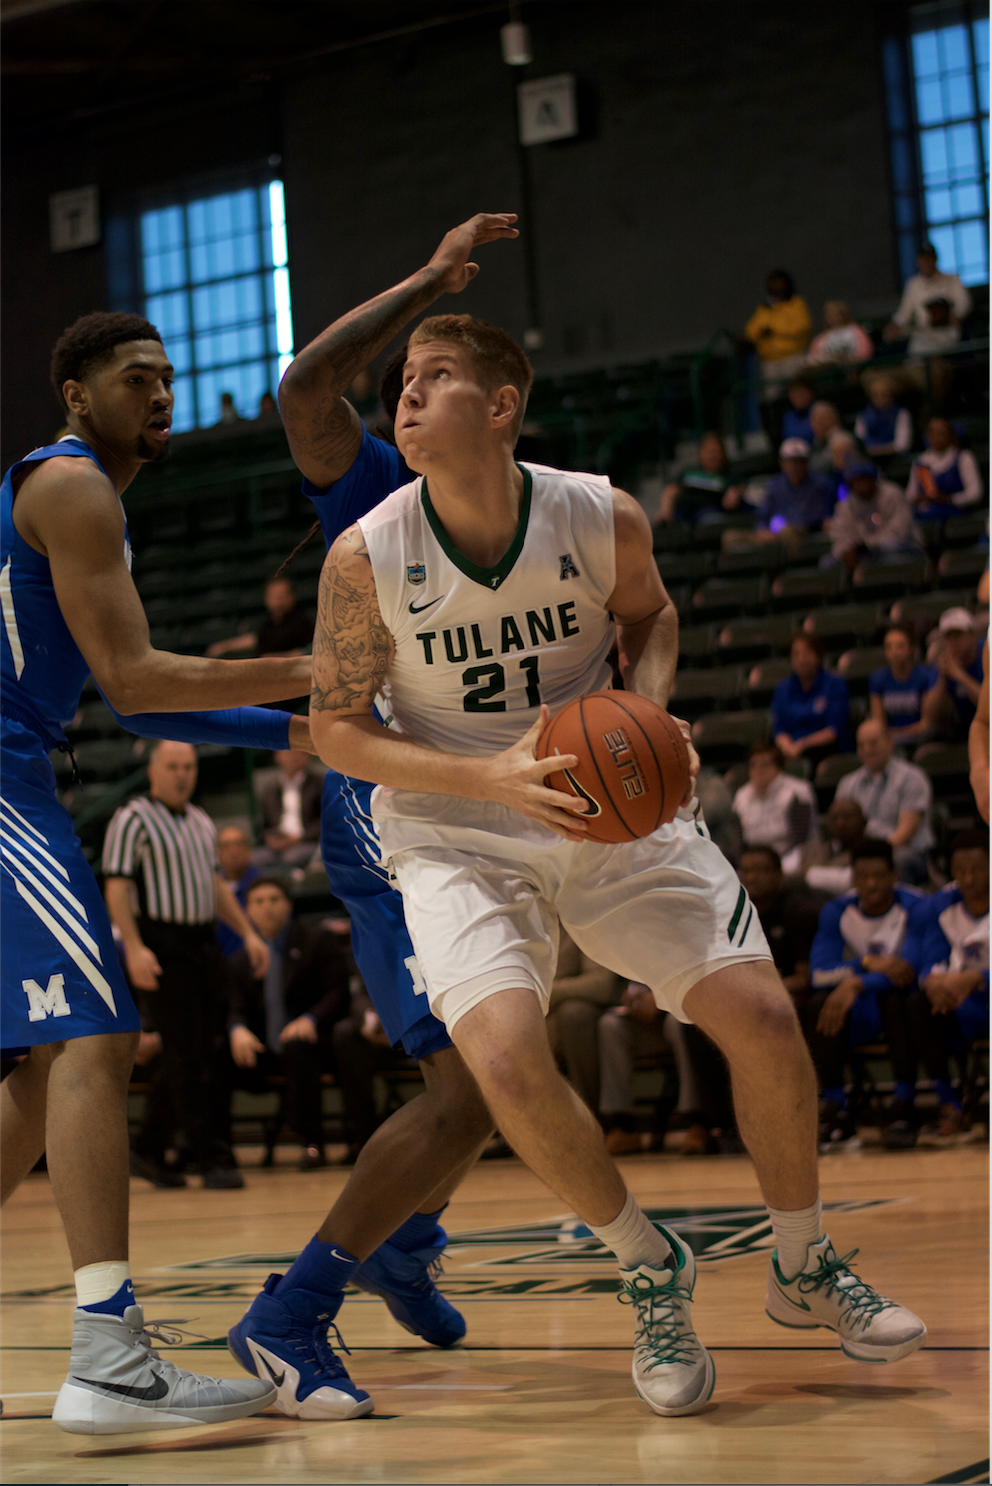 Sophomore forward Dylan Osetkowski makes a move on the basket to score two points in Tulane's 94-87 overtime win against Memphis on Feb. 13 in Devlin Fieldhouse.